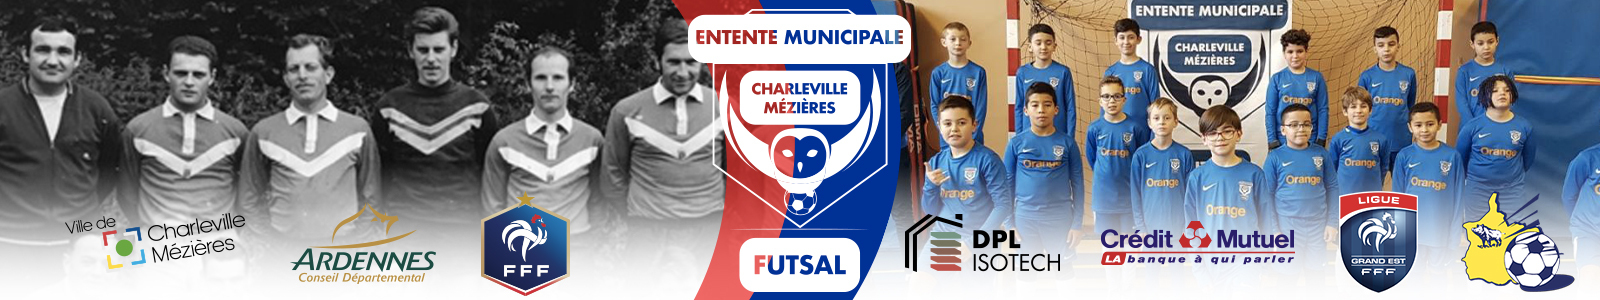 ENTENTE MUNICIPALE DE CHARLEVILLE MEZIERES : site officiel du club de foot de CHARLEVILLE MEZIERES - footeo